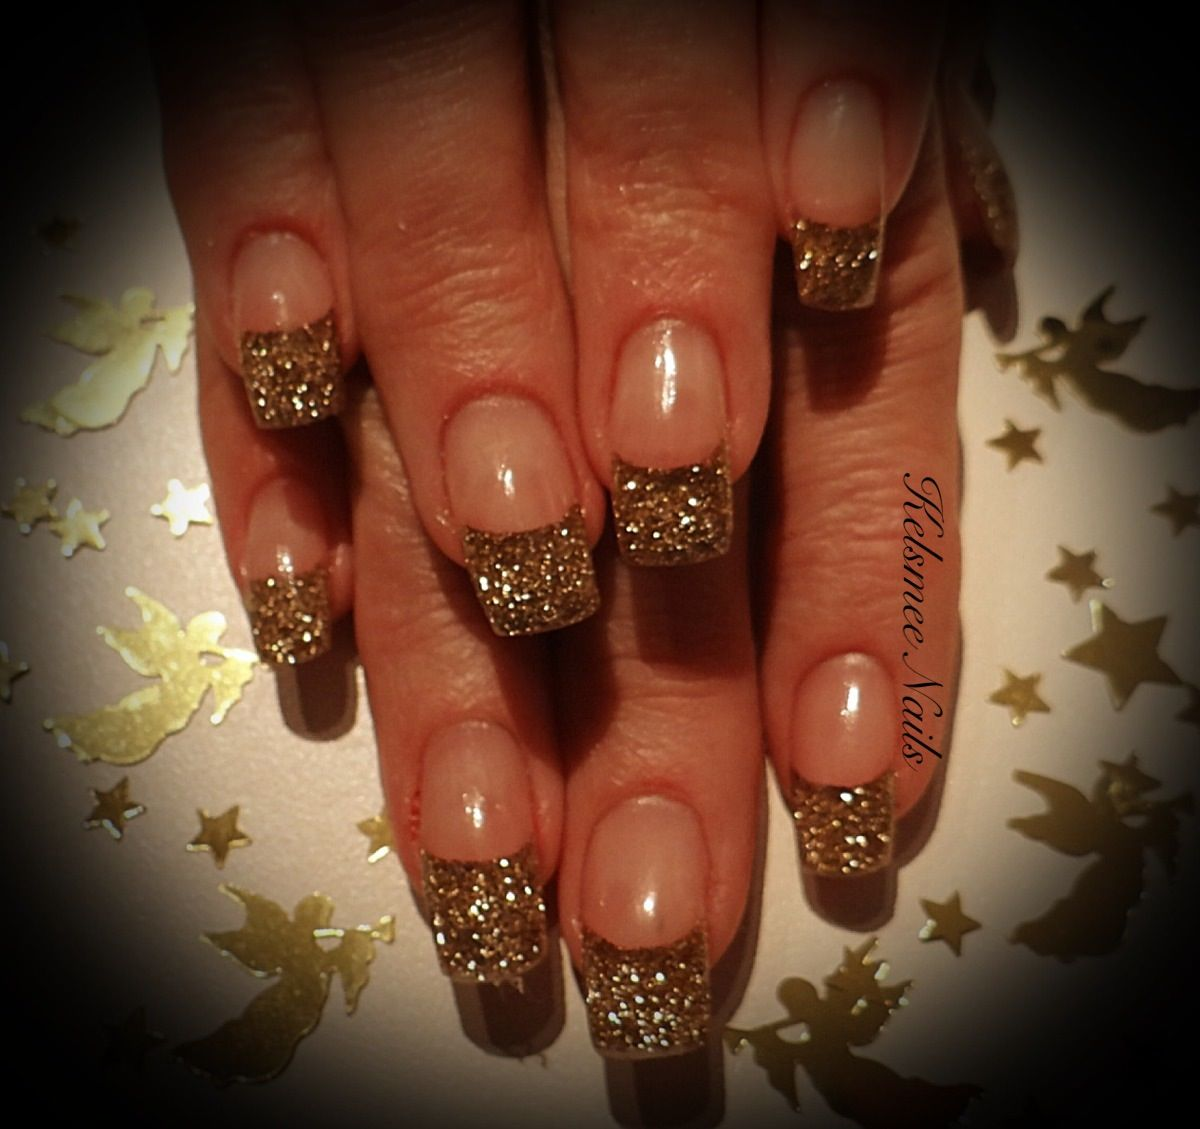 Young Nails acrylic gold glitter | Kelsmee Nails | Pinterest